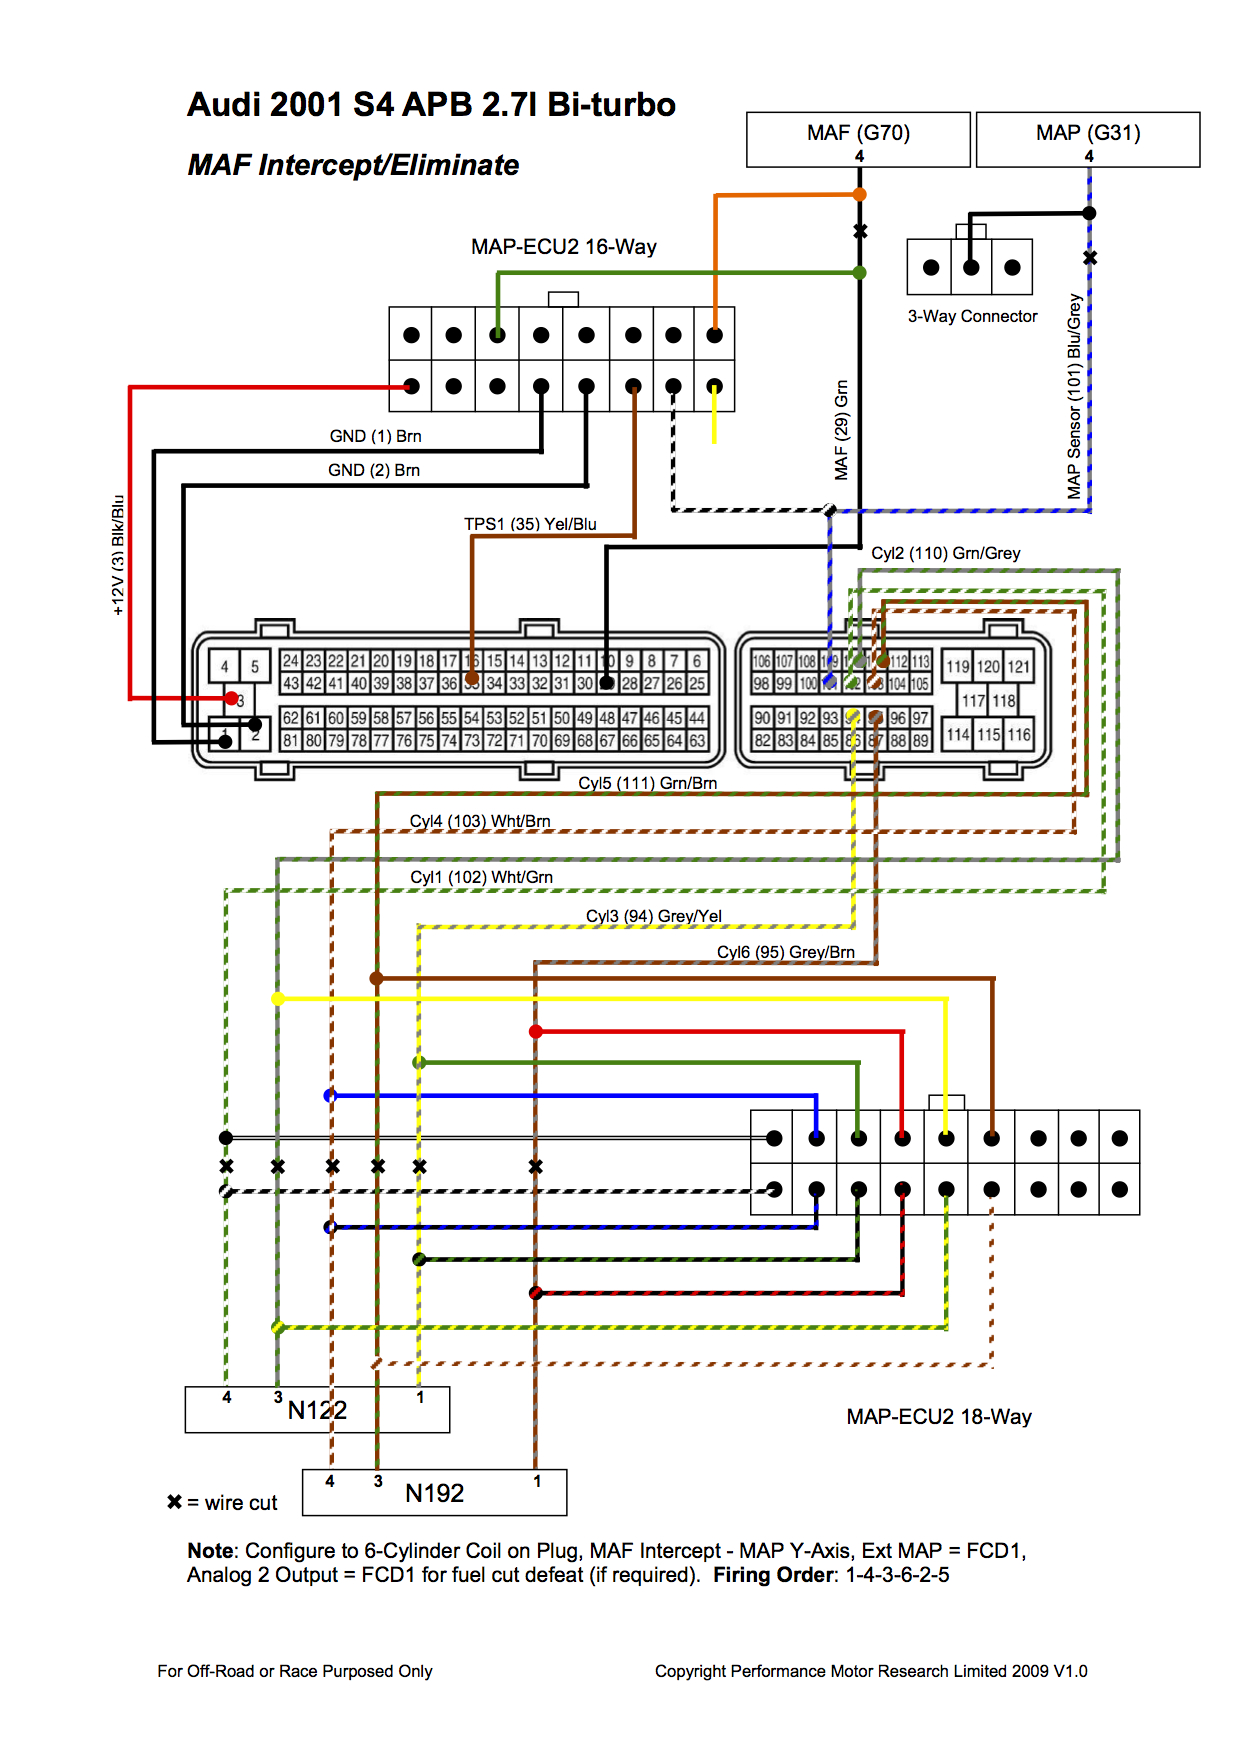 Audi S4 20011 ecu wiring diagram paccar ecu wiring diagram \u2022 wiring diagrams j 2000 audi s4 wiring diagram at gsmx.co